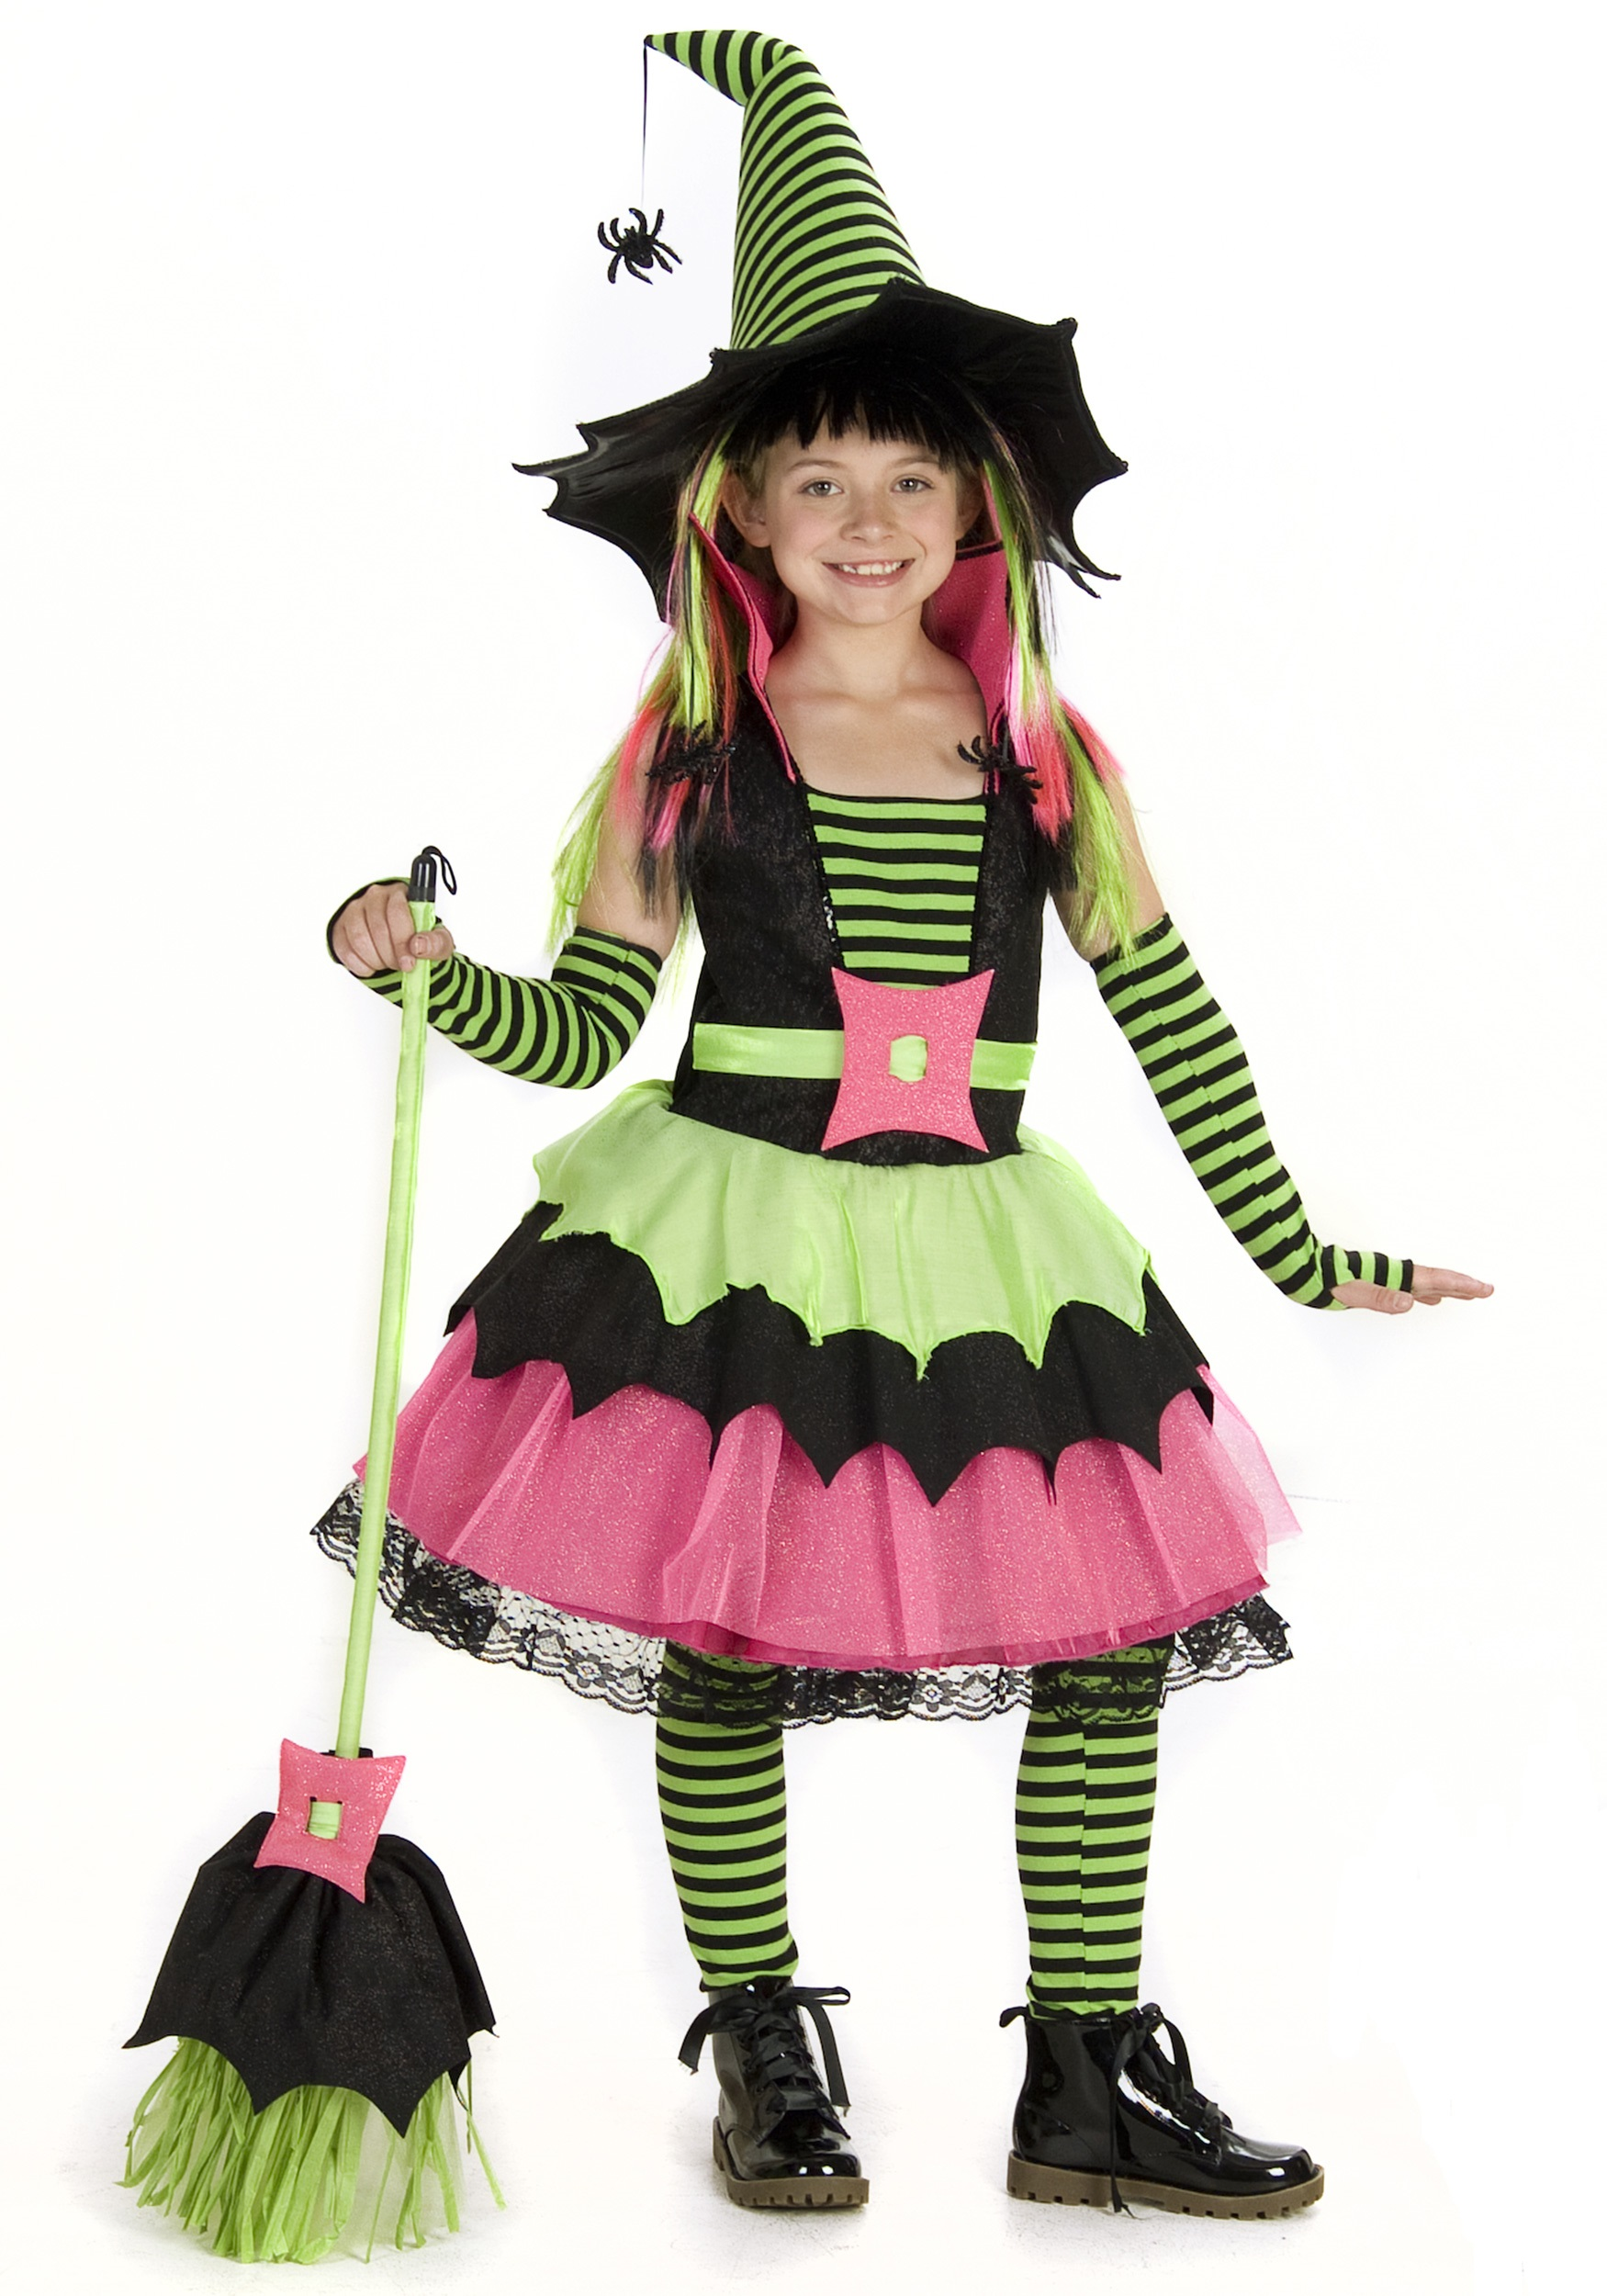 Child Spiderina Witch Costume  sc 1 st  Halloween Costumes & Child Spiderina Witch Costume - Halloween Costumes